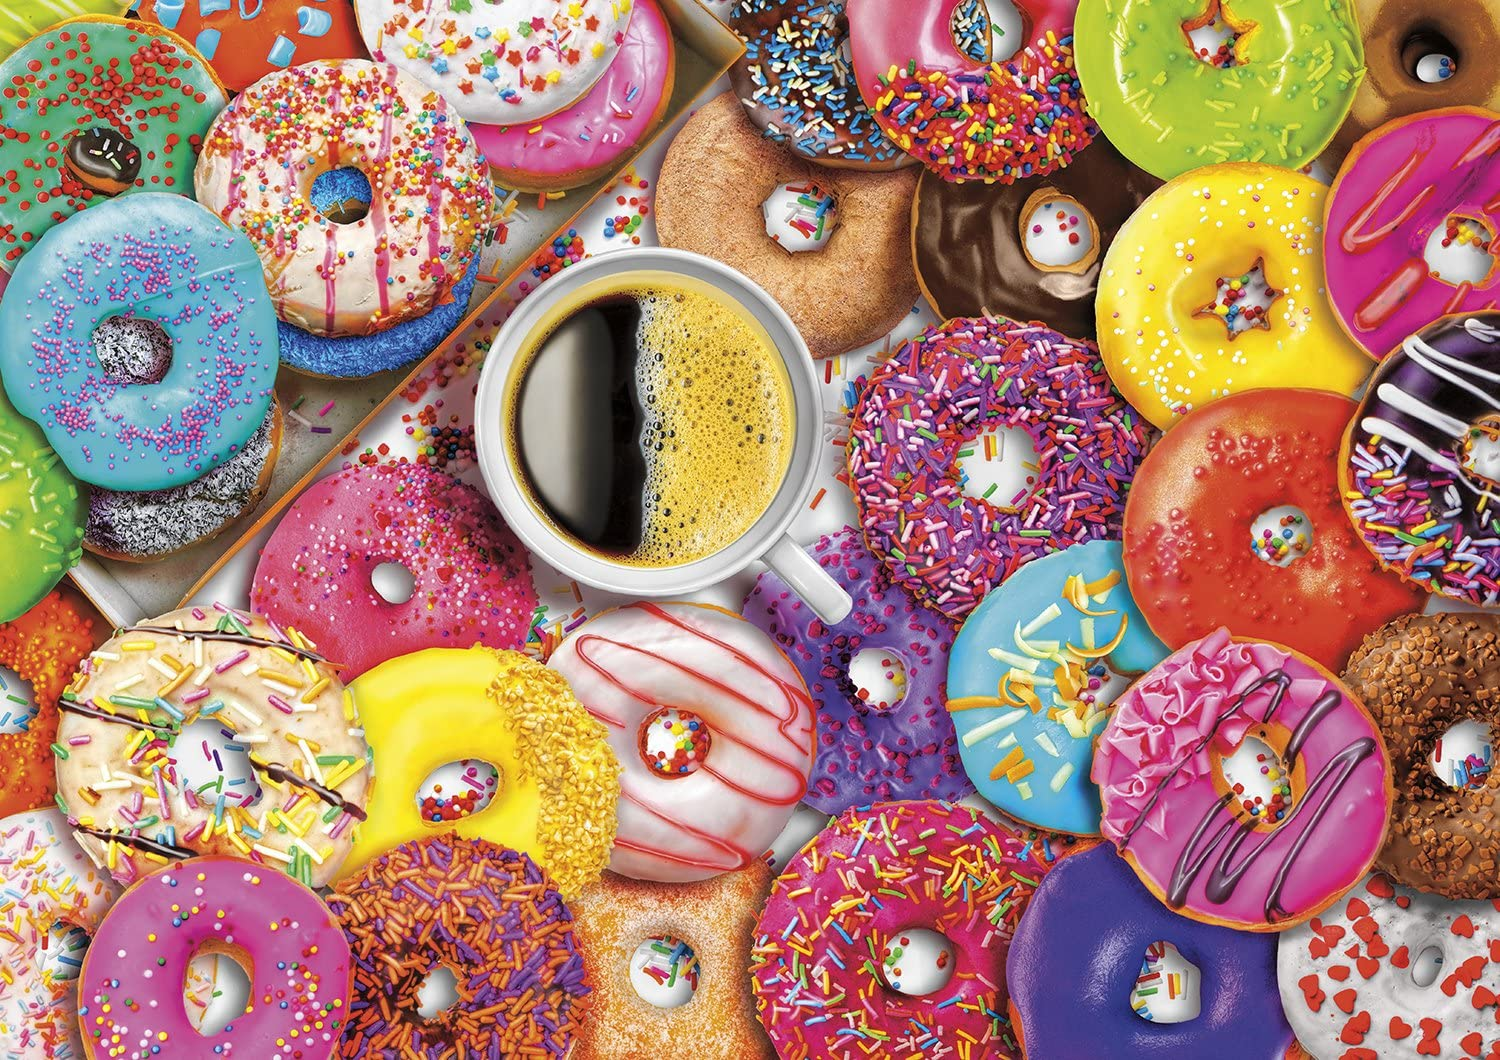 Buffalo Games - Vivid Collection - Aimee Stewart - Coffee and Donuts - 300 Large Piece Jigsaw Puzzle